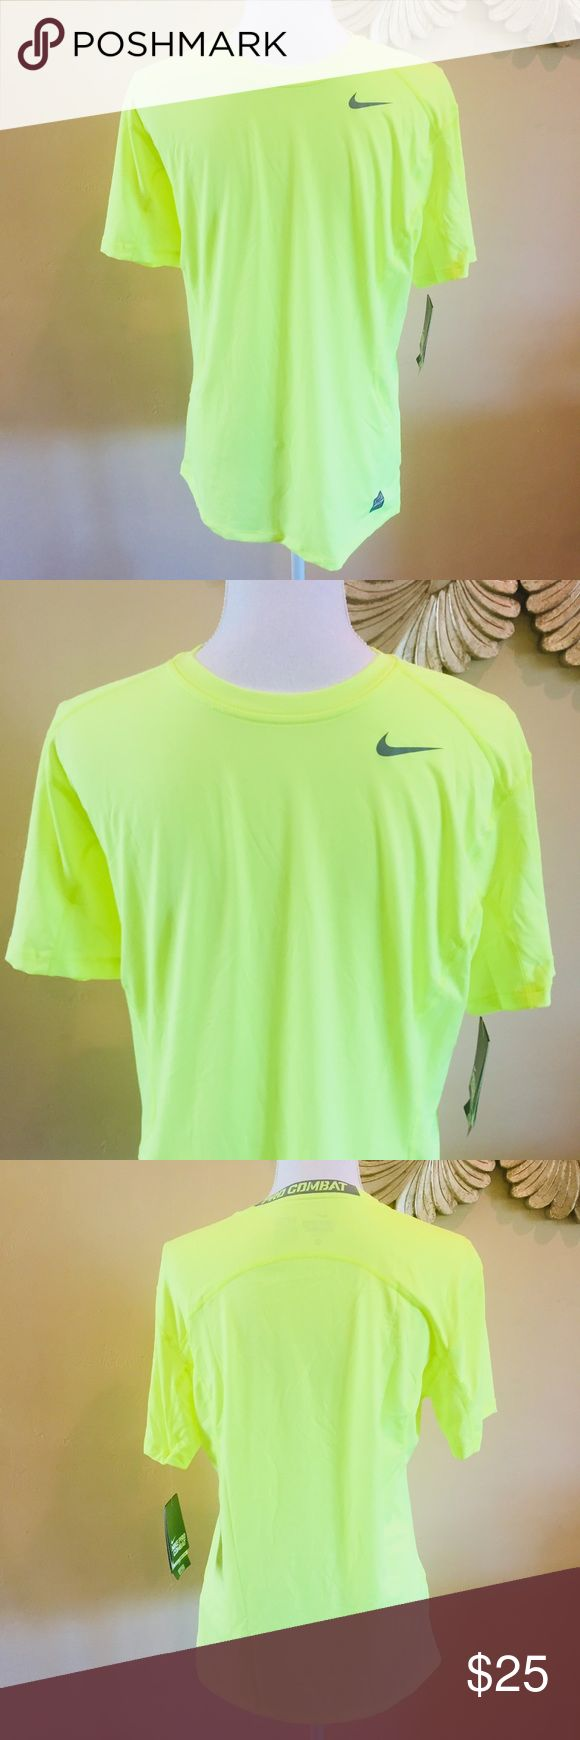 Men's Nike Pro Combat Compression Base Layer Shirt Men's Nike Pro Combat Compression Base Layer Fitted S/S Shirt  Yellow  Size Medium New with tags Nike Shirts Tees - Short Sleeve